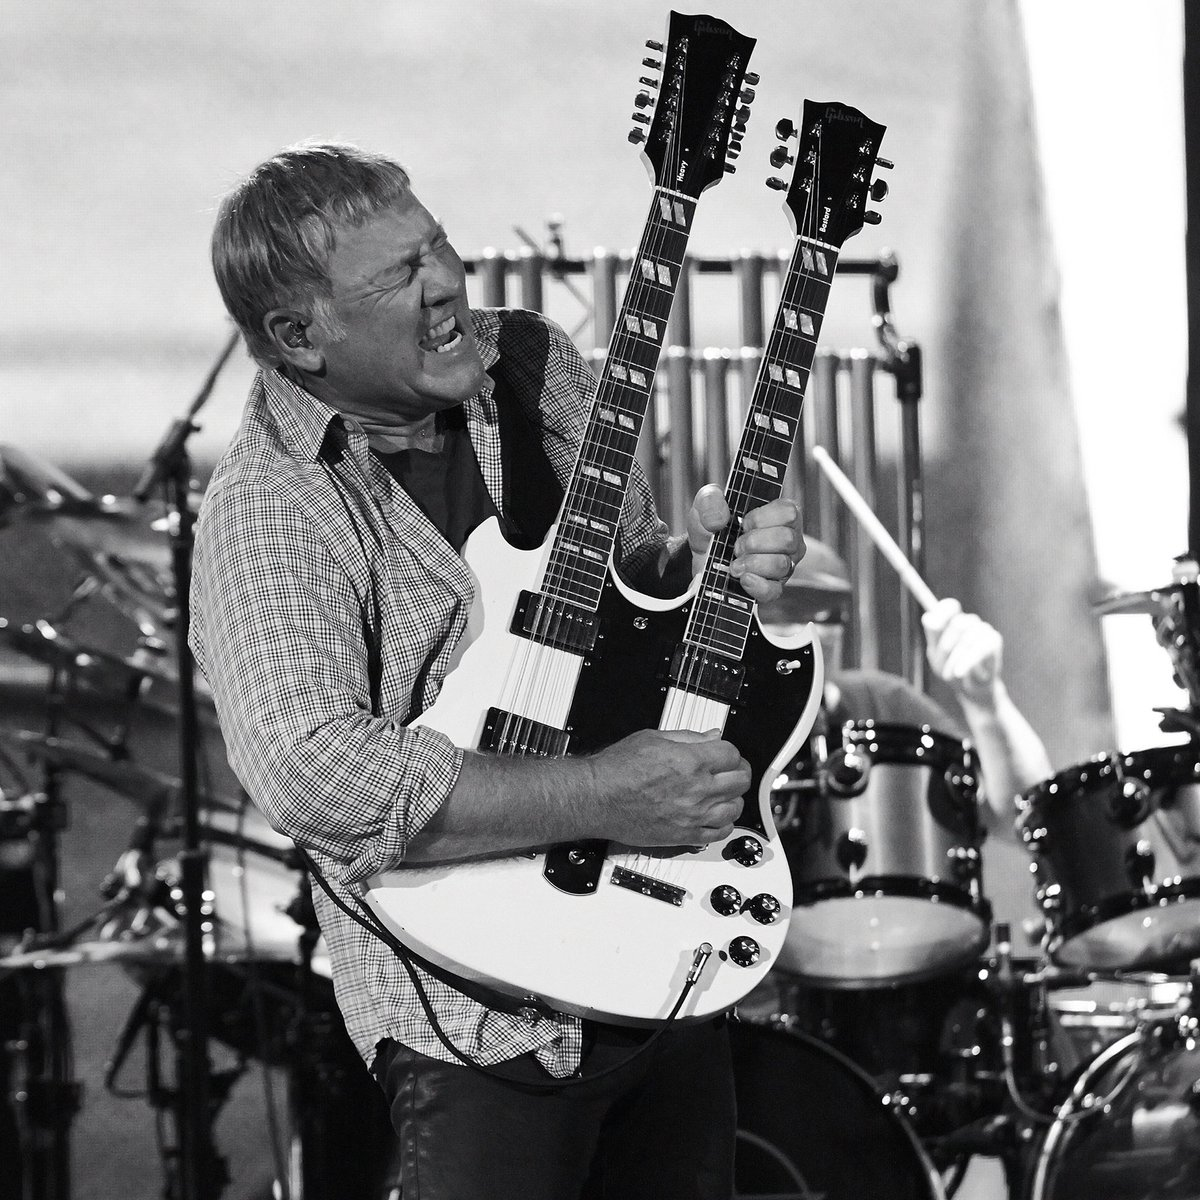 Happy Birthday to the one and only #AlexLifeson ! https://t.co/gdpI9lcEBx